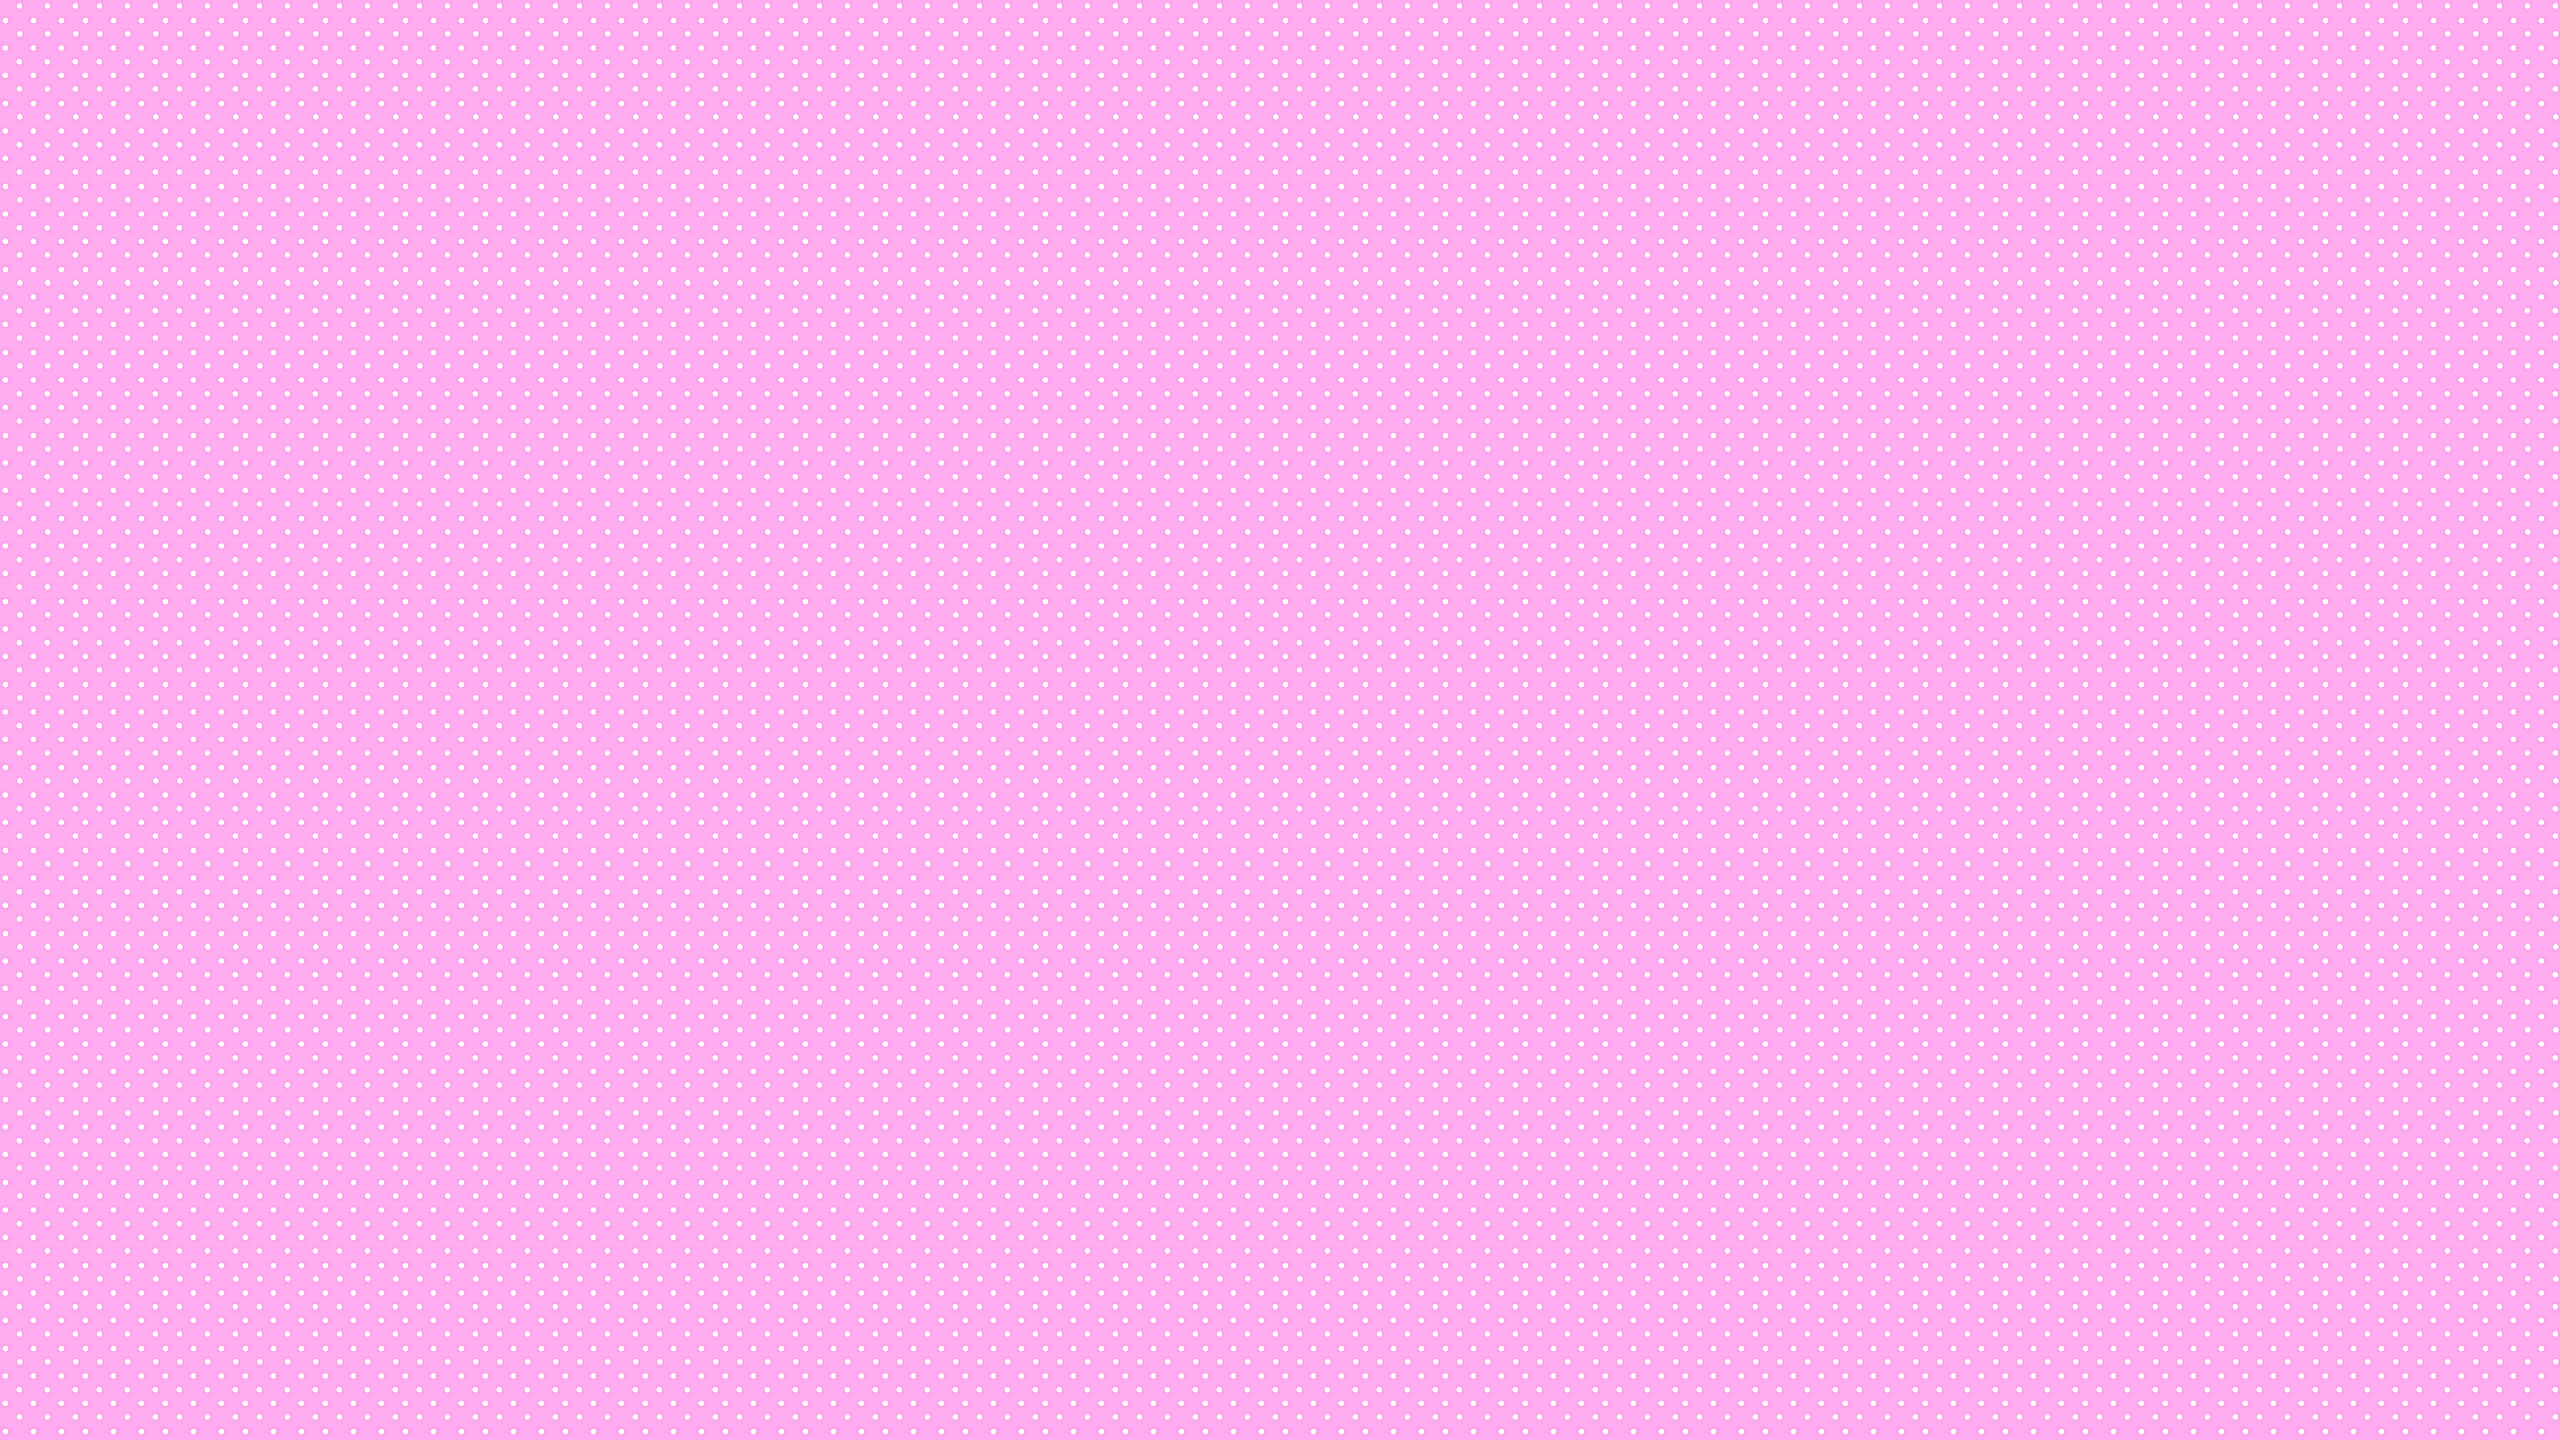 Pastel Pink Background Tumblr Pastel tumblr themes 2560x1440